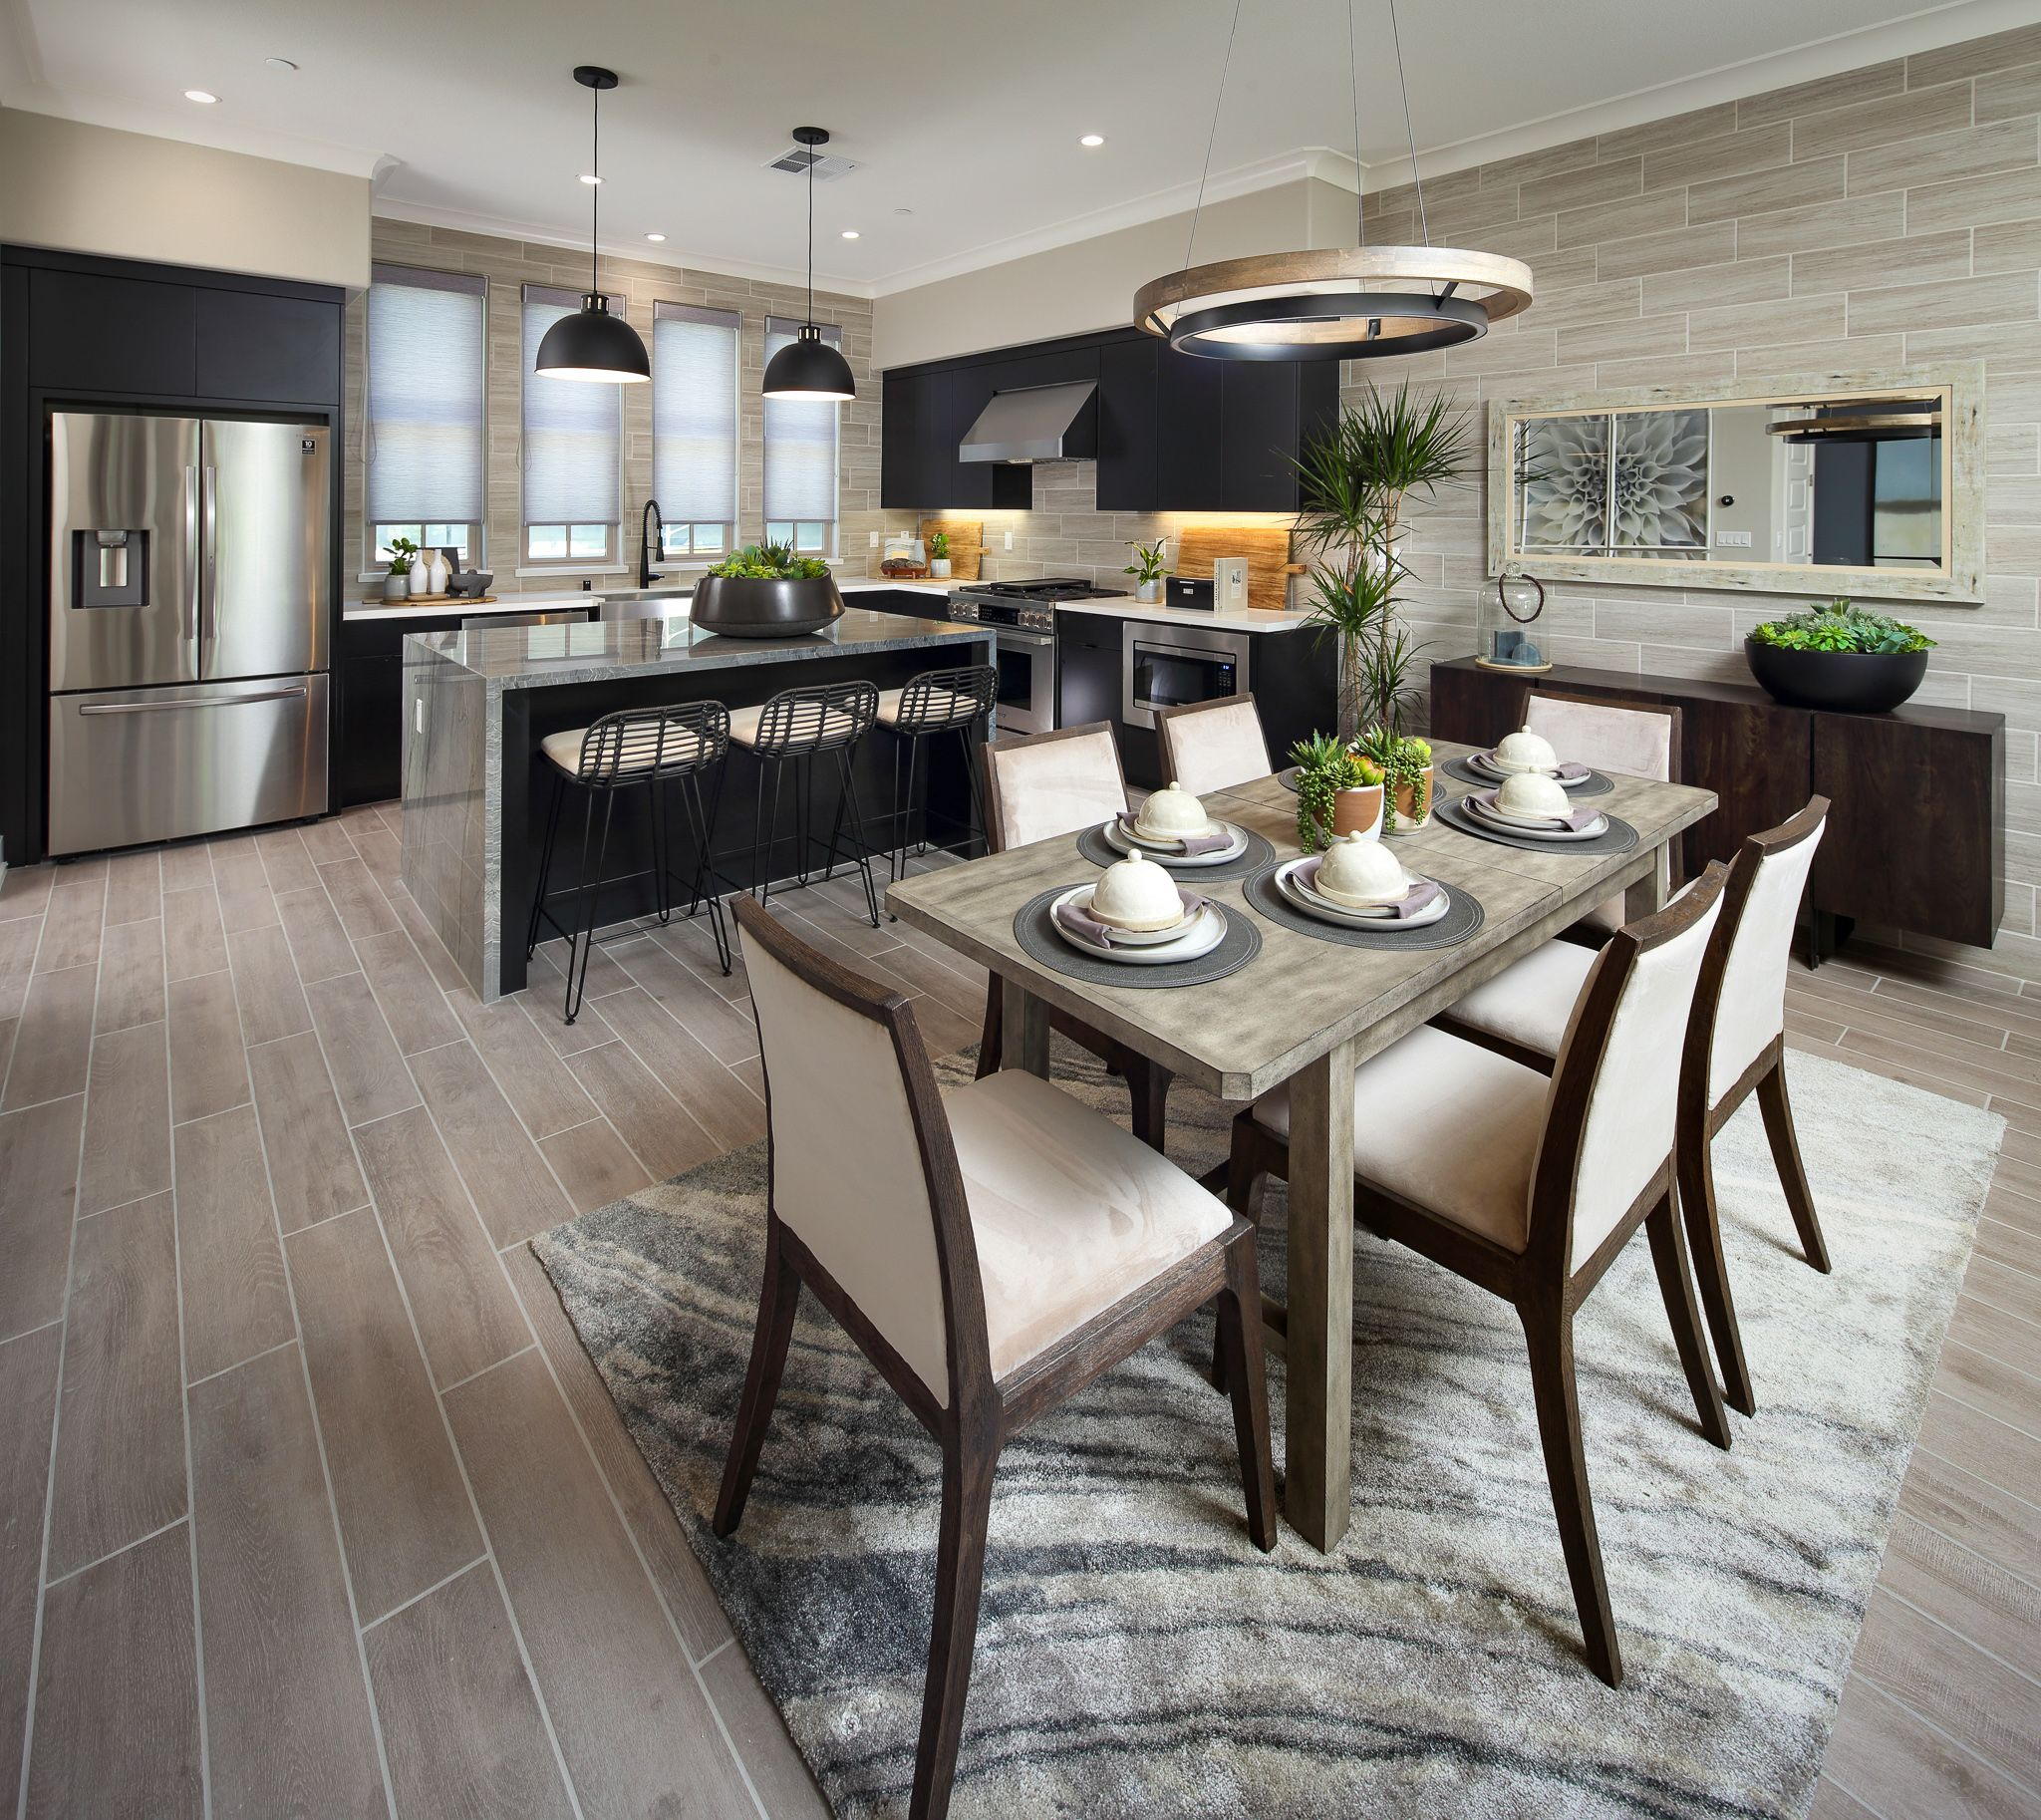 Kitchen featured in the Maravilla- Plan 2 By Dividend Homes in San Jose, CA